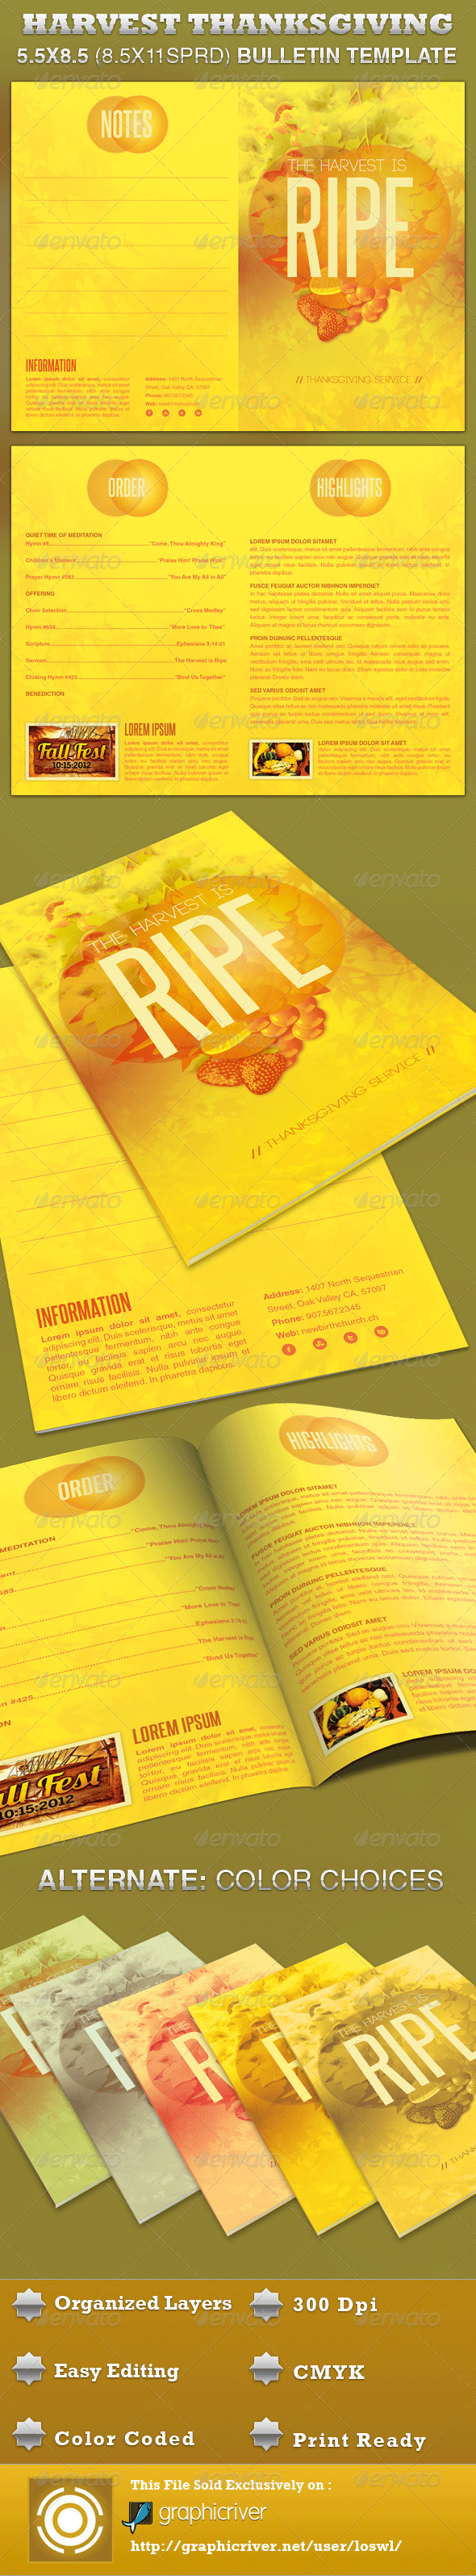 GraphicRiver Church Harvest Thanksgiving Service Bulletin 3262582